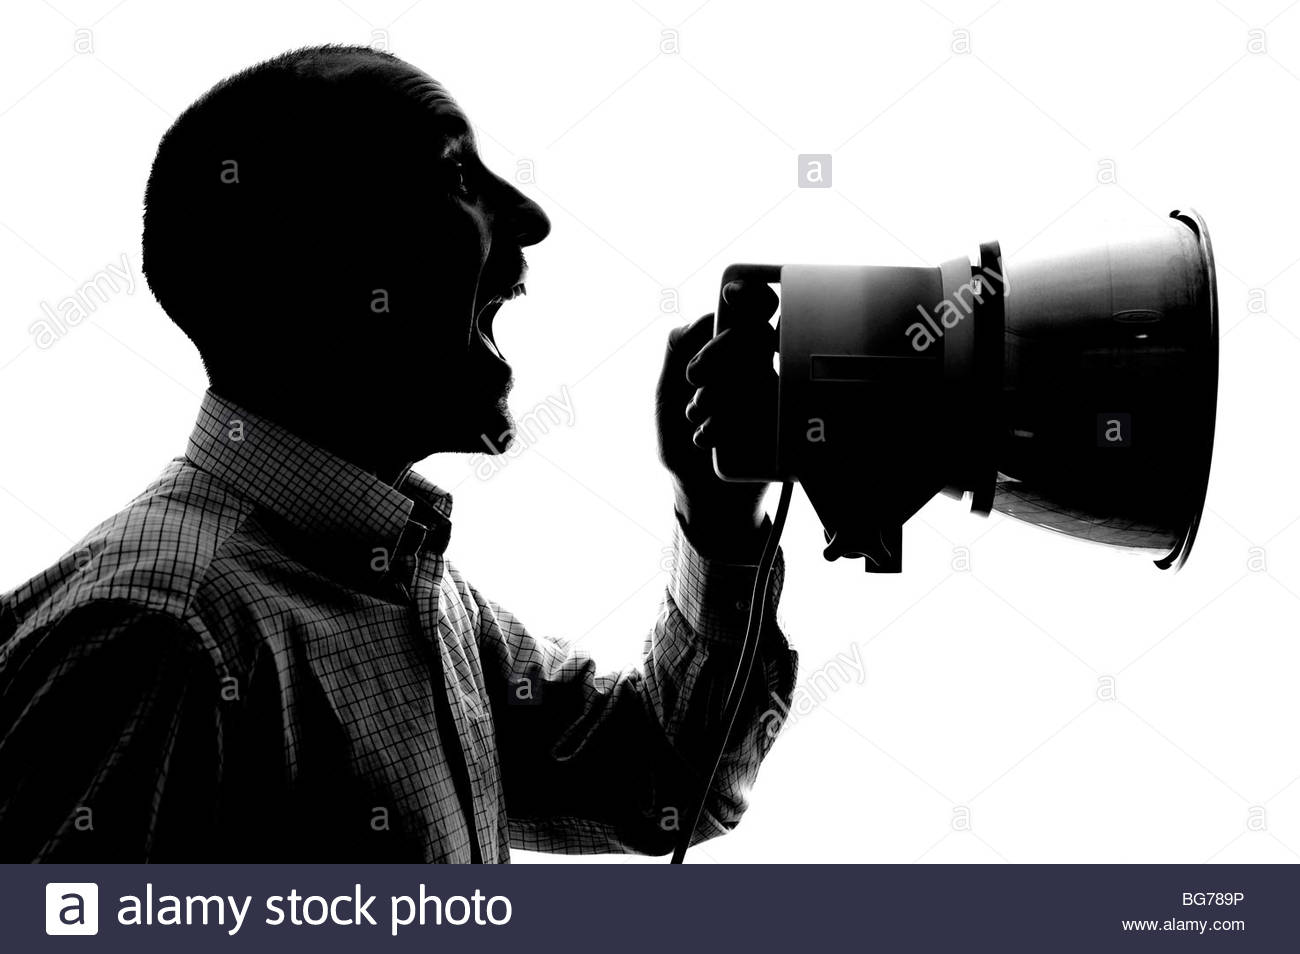 Silhouetted man with loudhailer - Stock Image